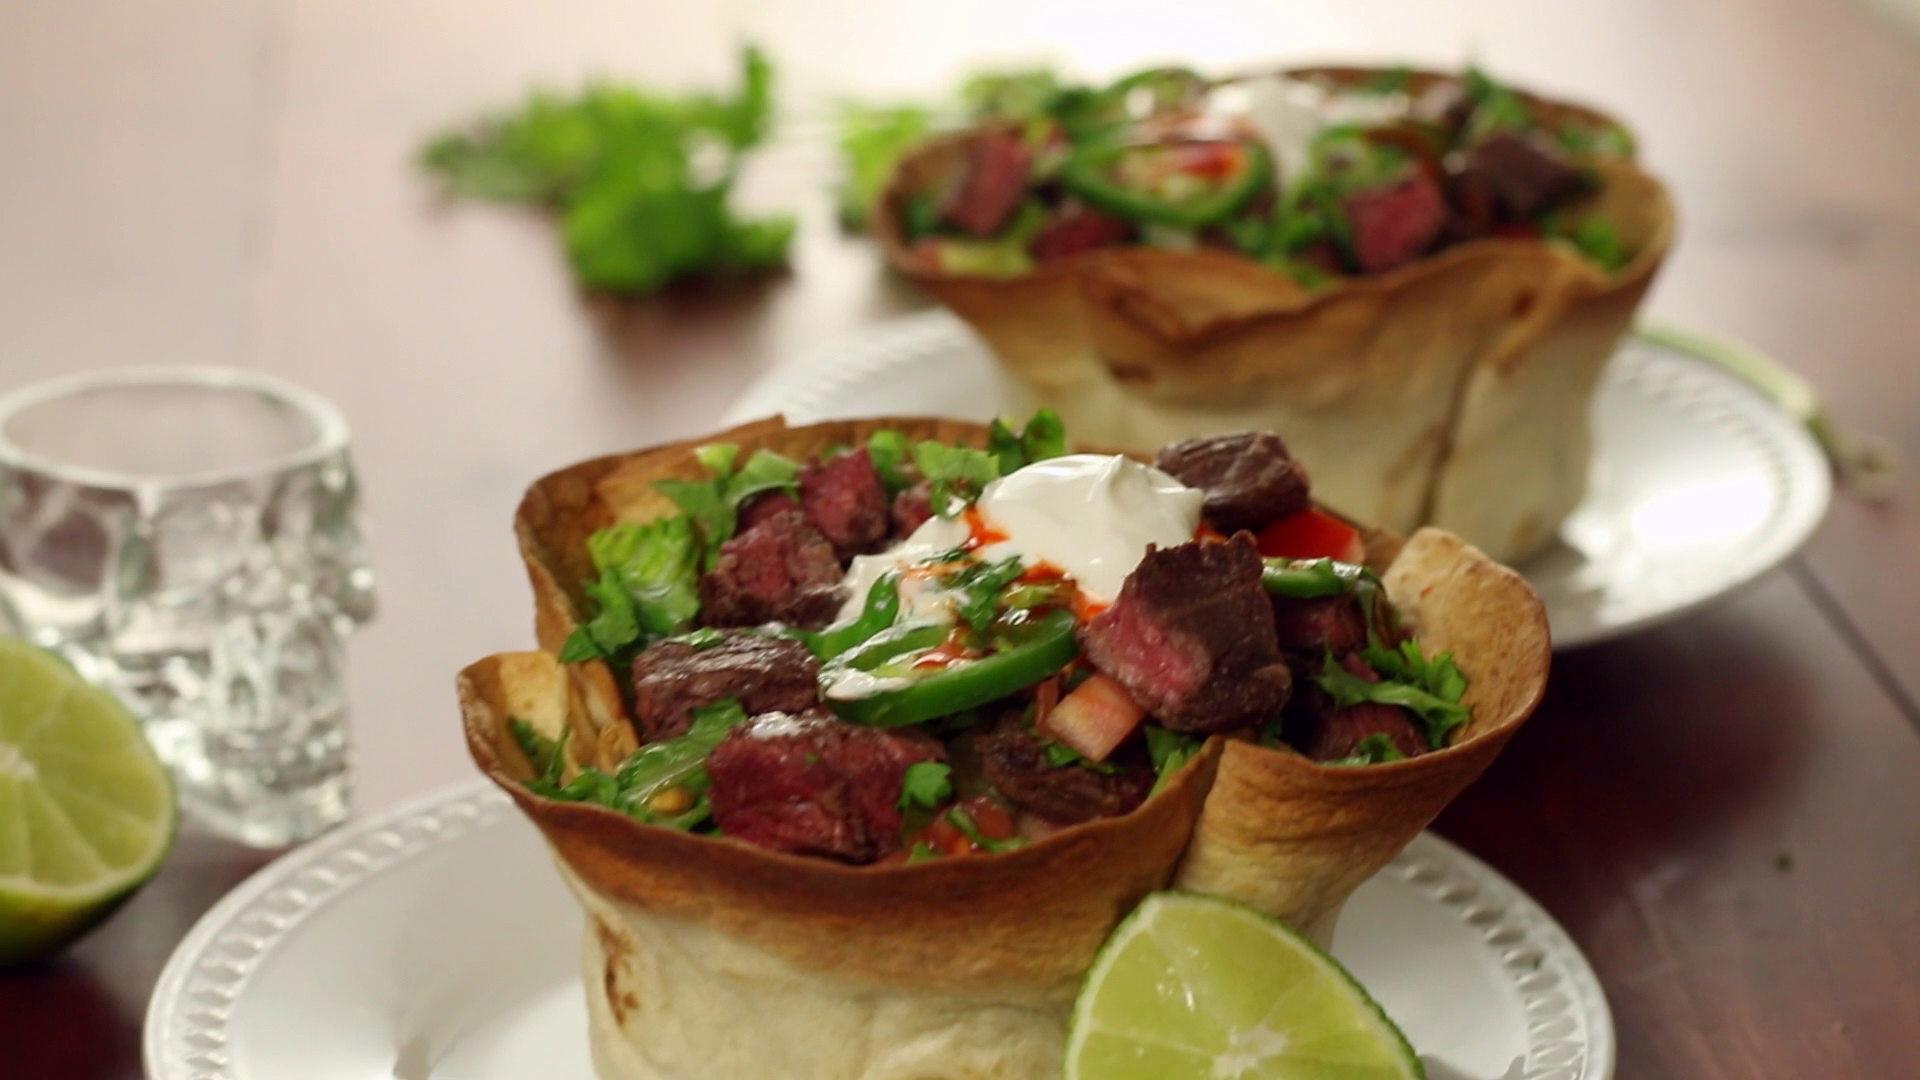 Tequila lime steak tostada bowl hungry af tastemade forumfinder Choice Image